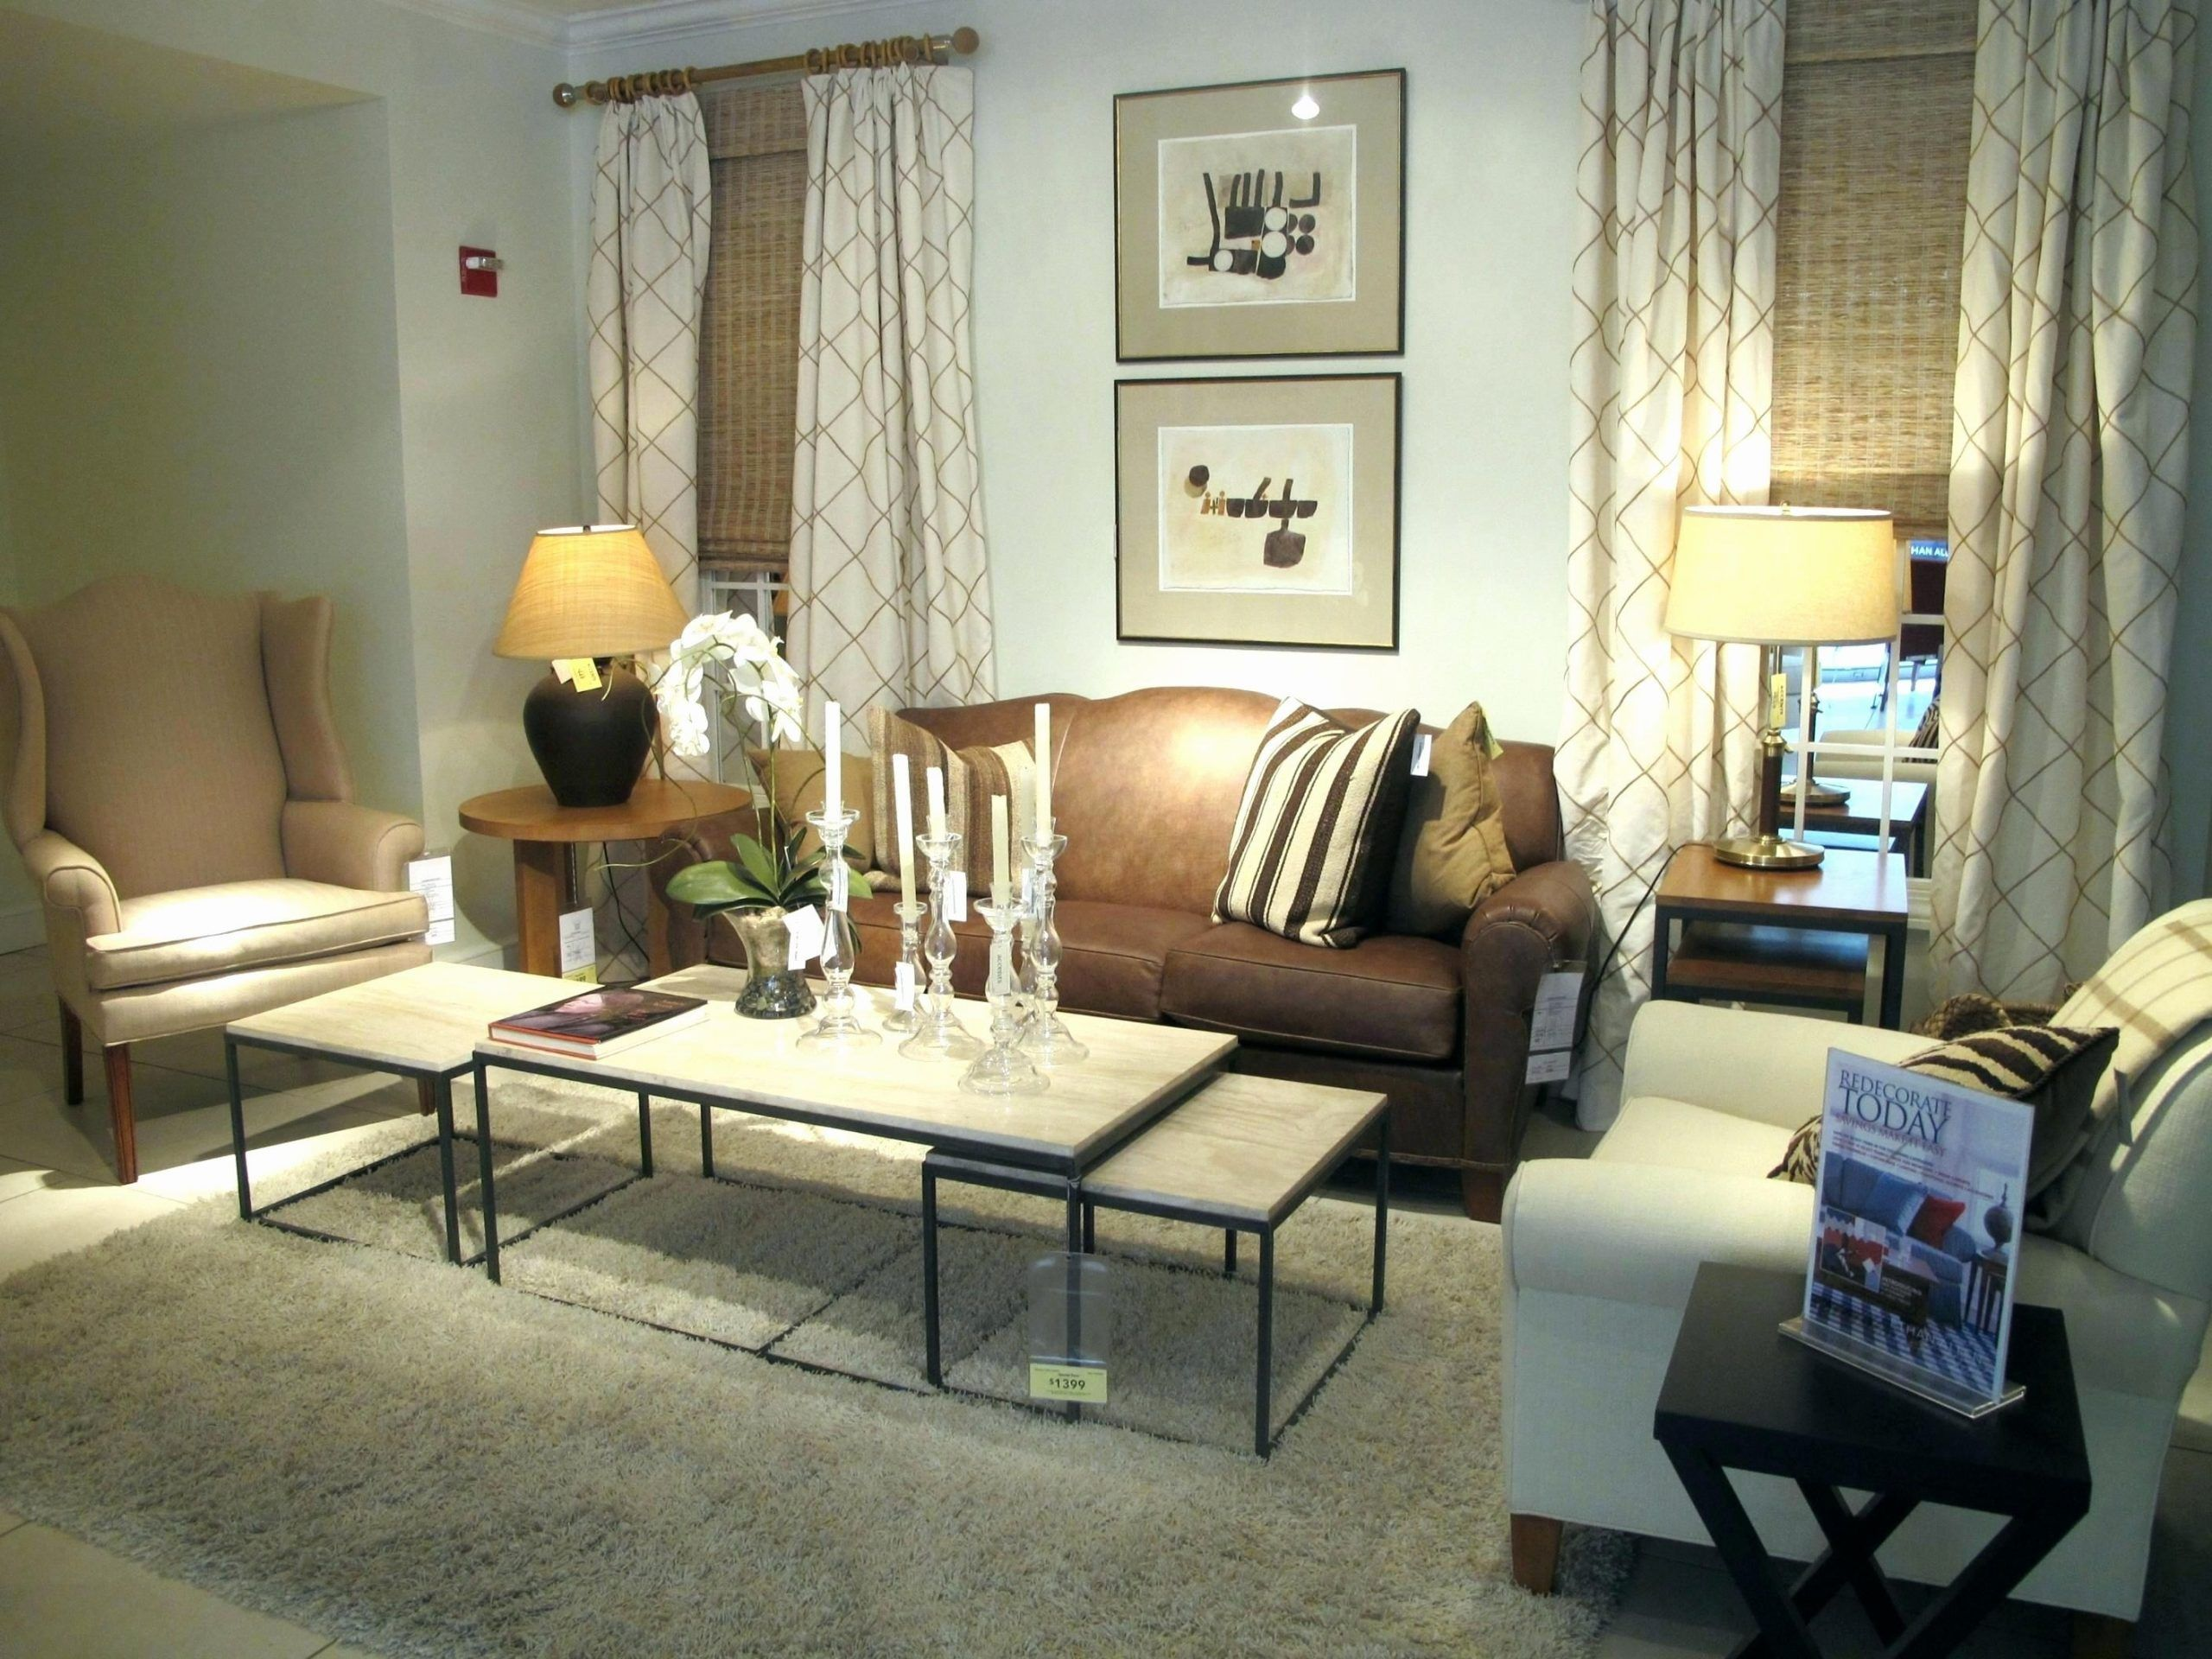 Affordable Ethan Allen Used Furniture Ideas